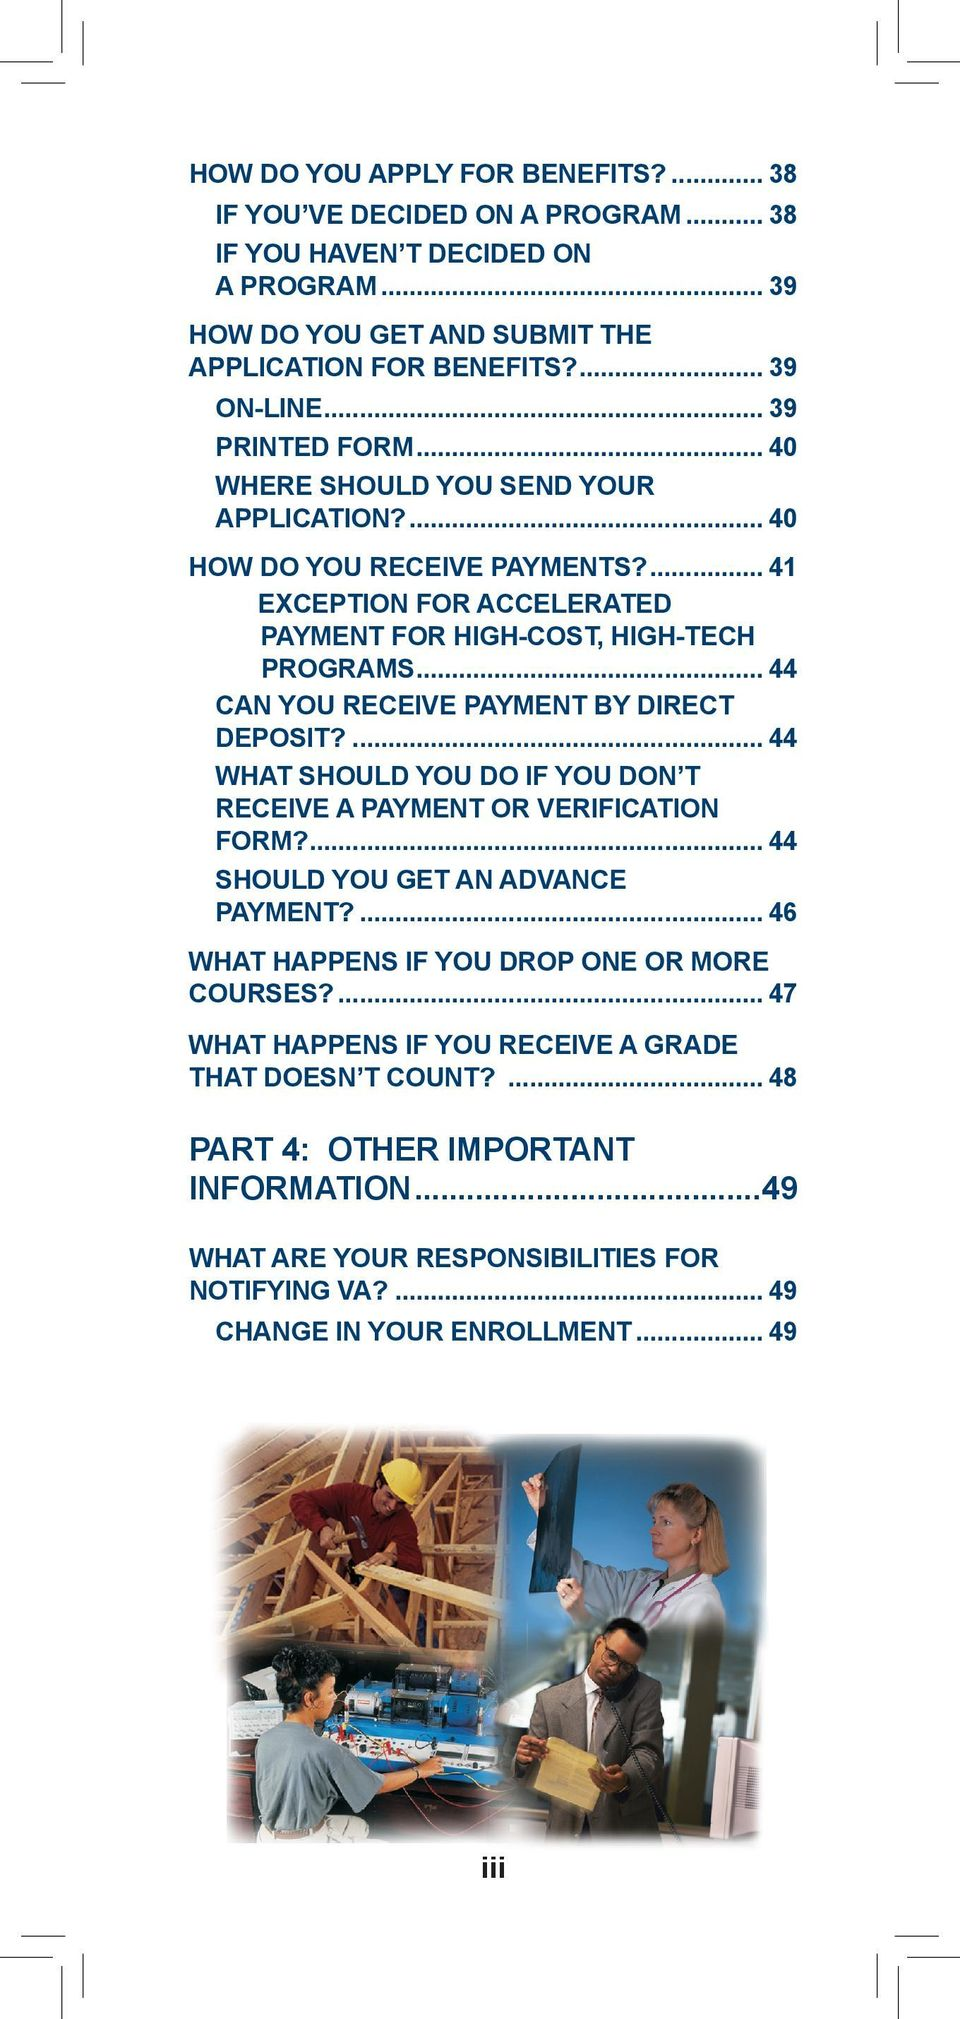 .. 44 CAN YOU RECEIVE PAYMENT BY DIRECT DEPOSIT?... 44 WHAT SHOULD YOU DO IF YOU DON T RECEIVE A PAYMENT OR VERIFICATION FORM?... 44 SHOULD YOU GET AN ADVANCE PAYMENT?